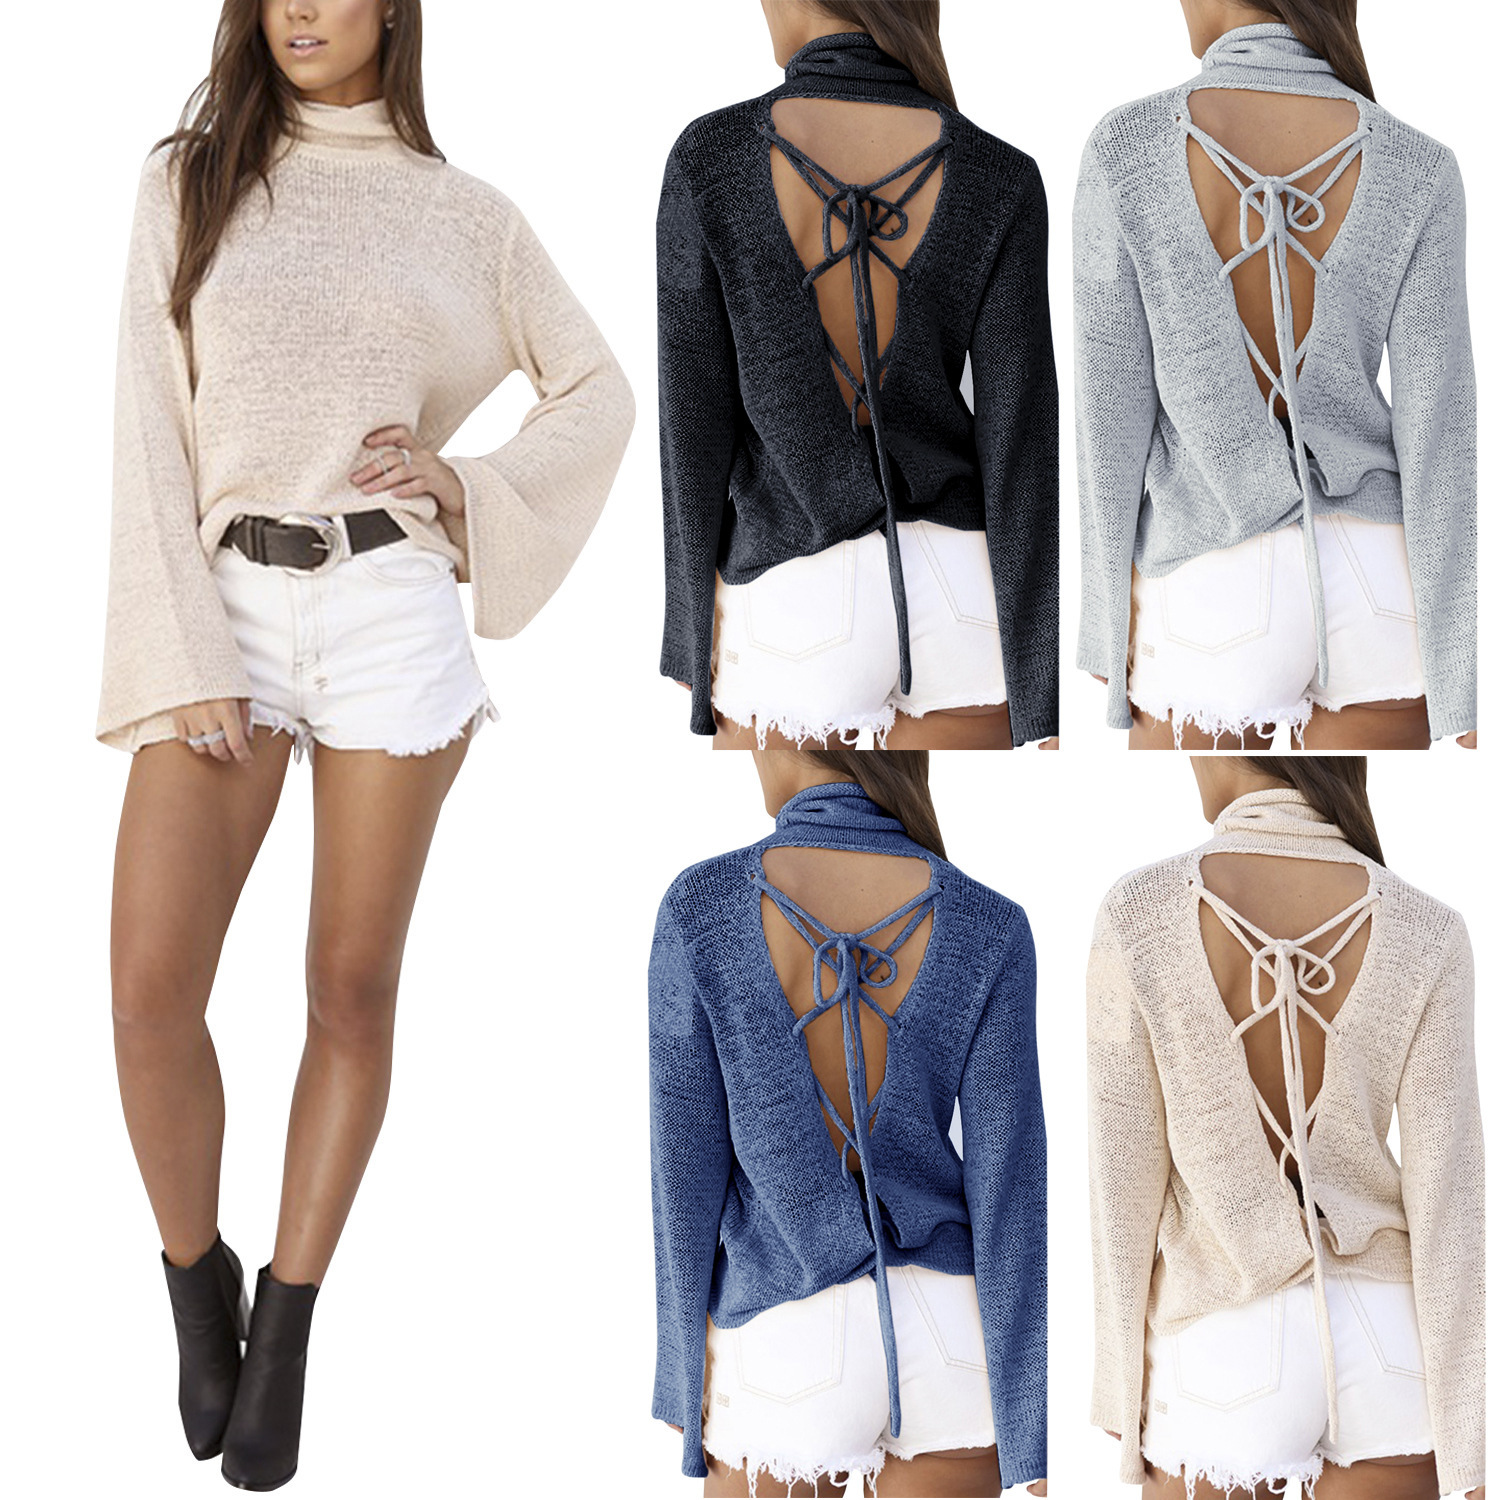 Sexy Women Long Sleeve Casual Knitted Loose Sweater Lace up Backless Outwear Coat Sweater 2016 European And American Am